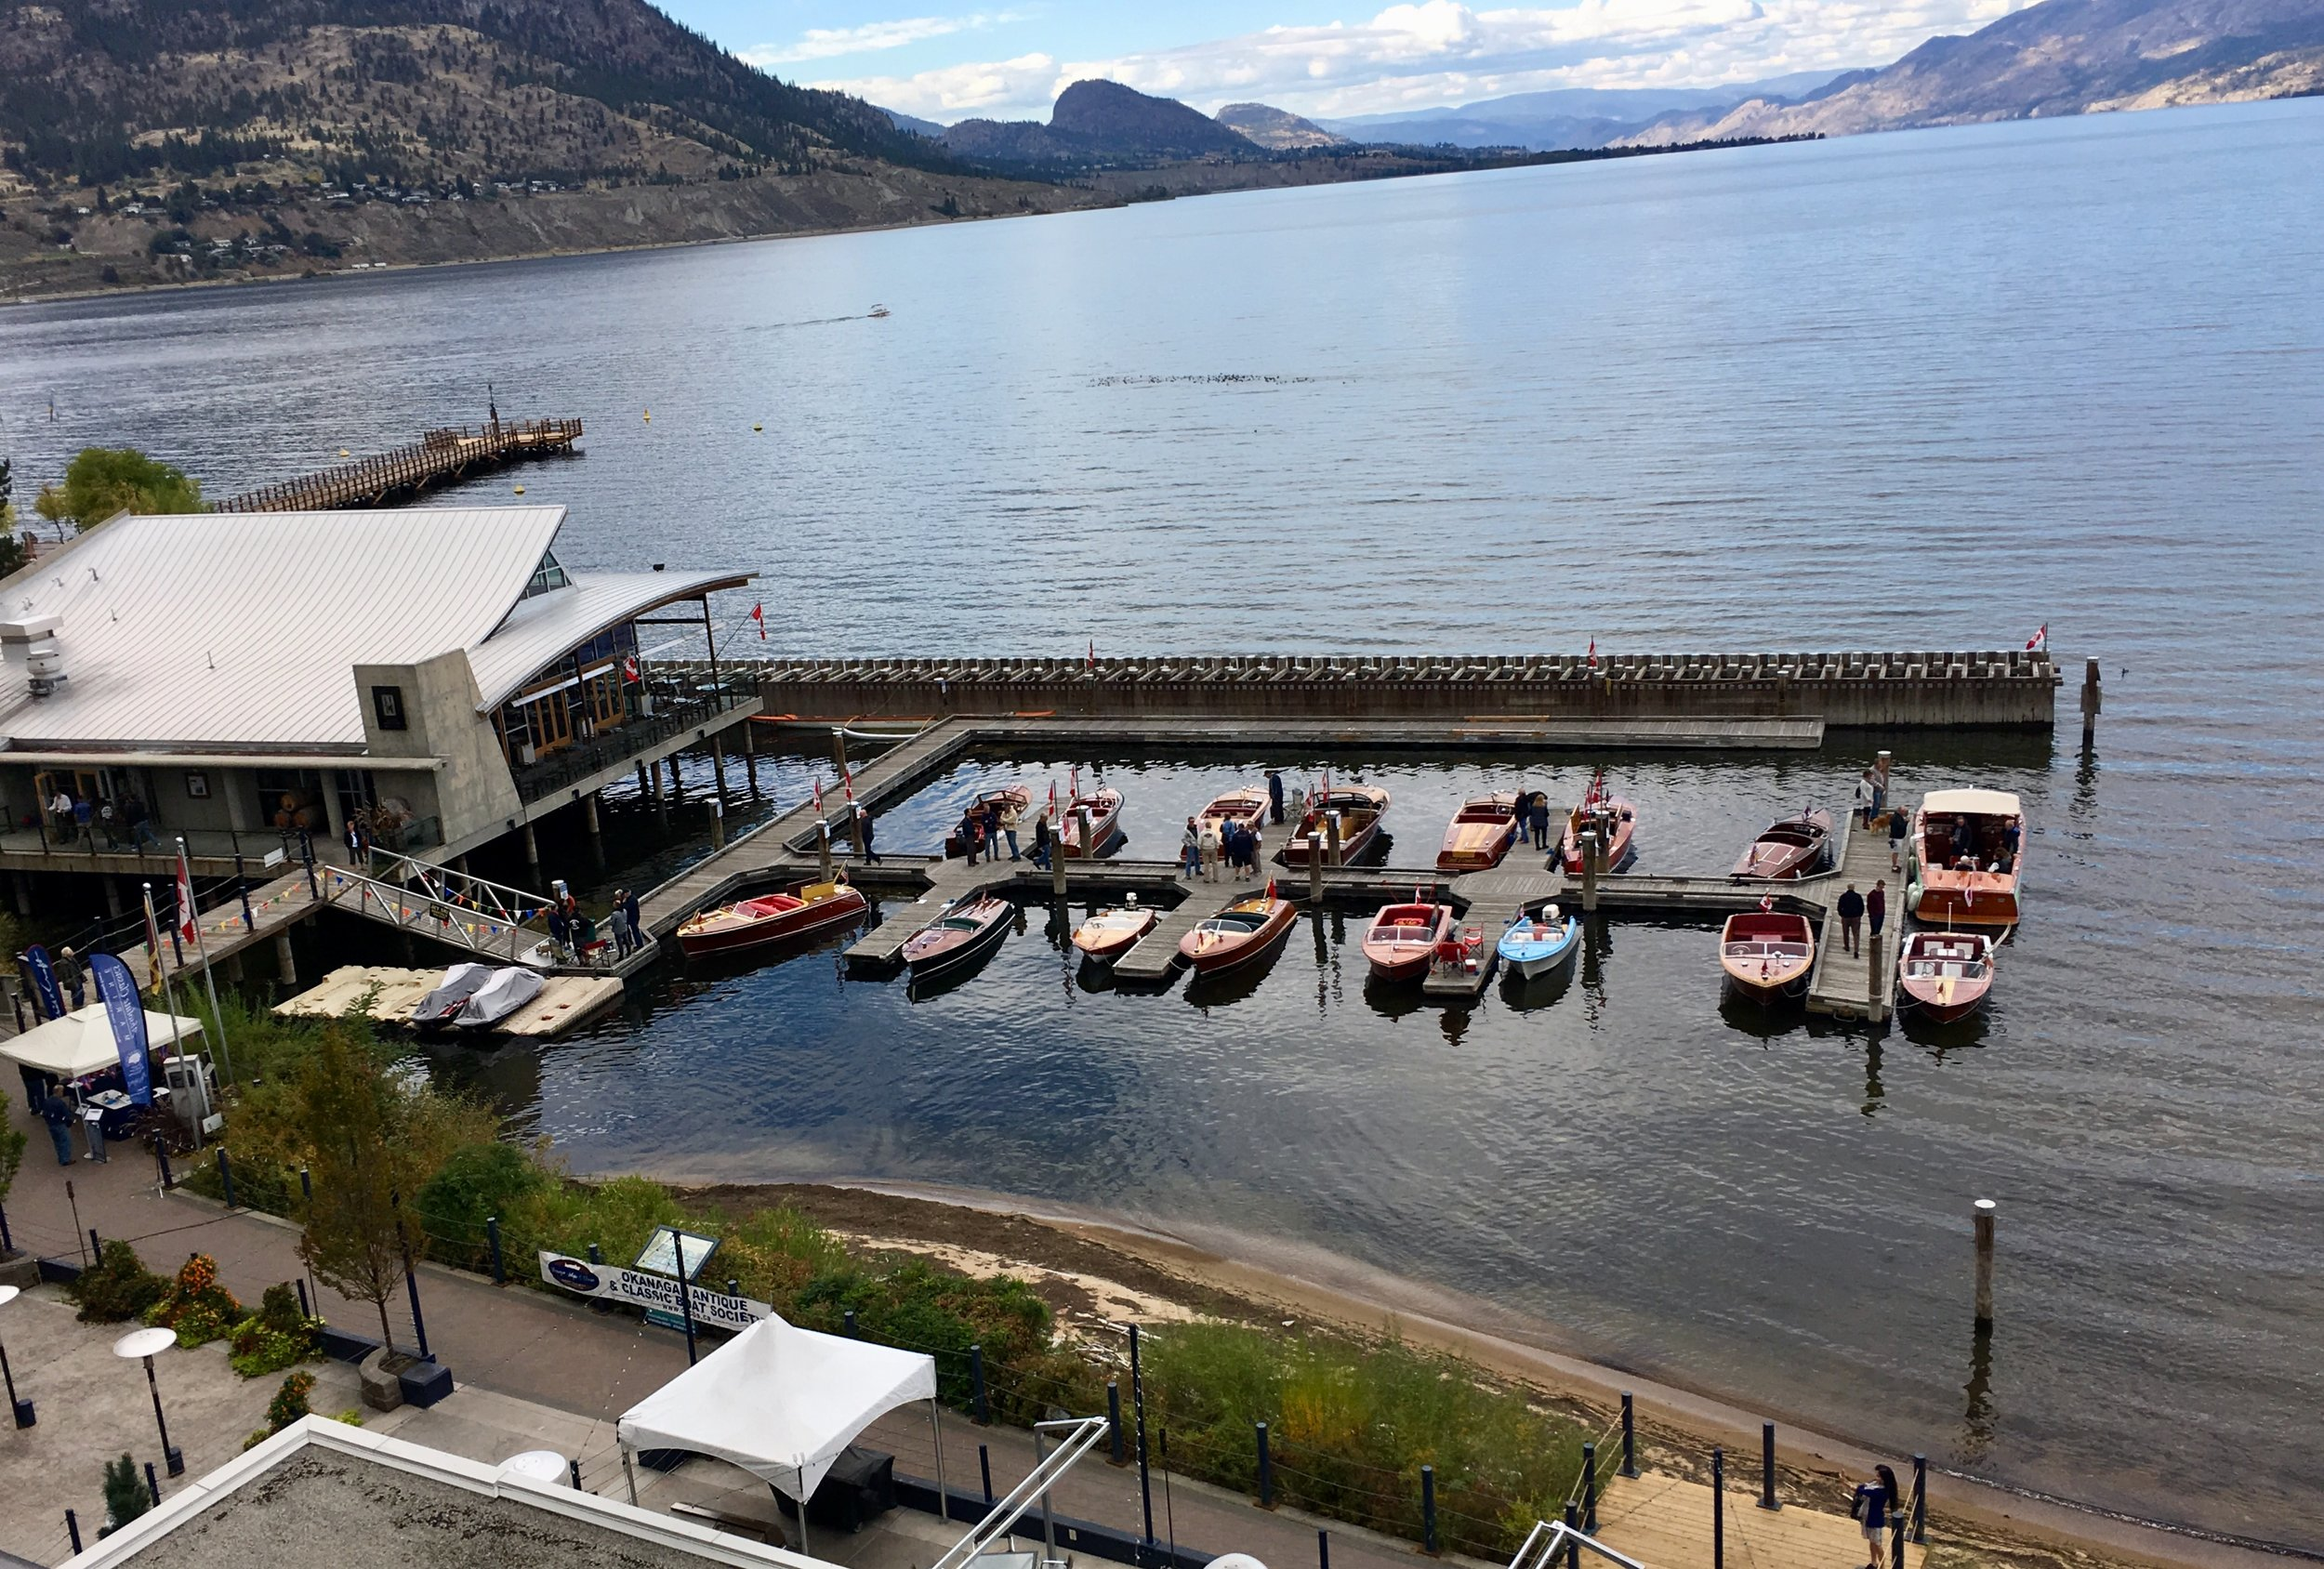 Our own Penticton Show - Sept 28-30 2018By Steve Leslie